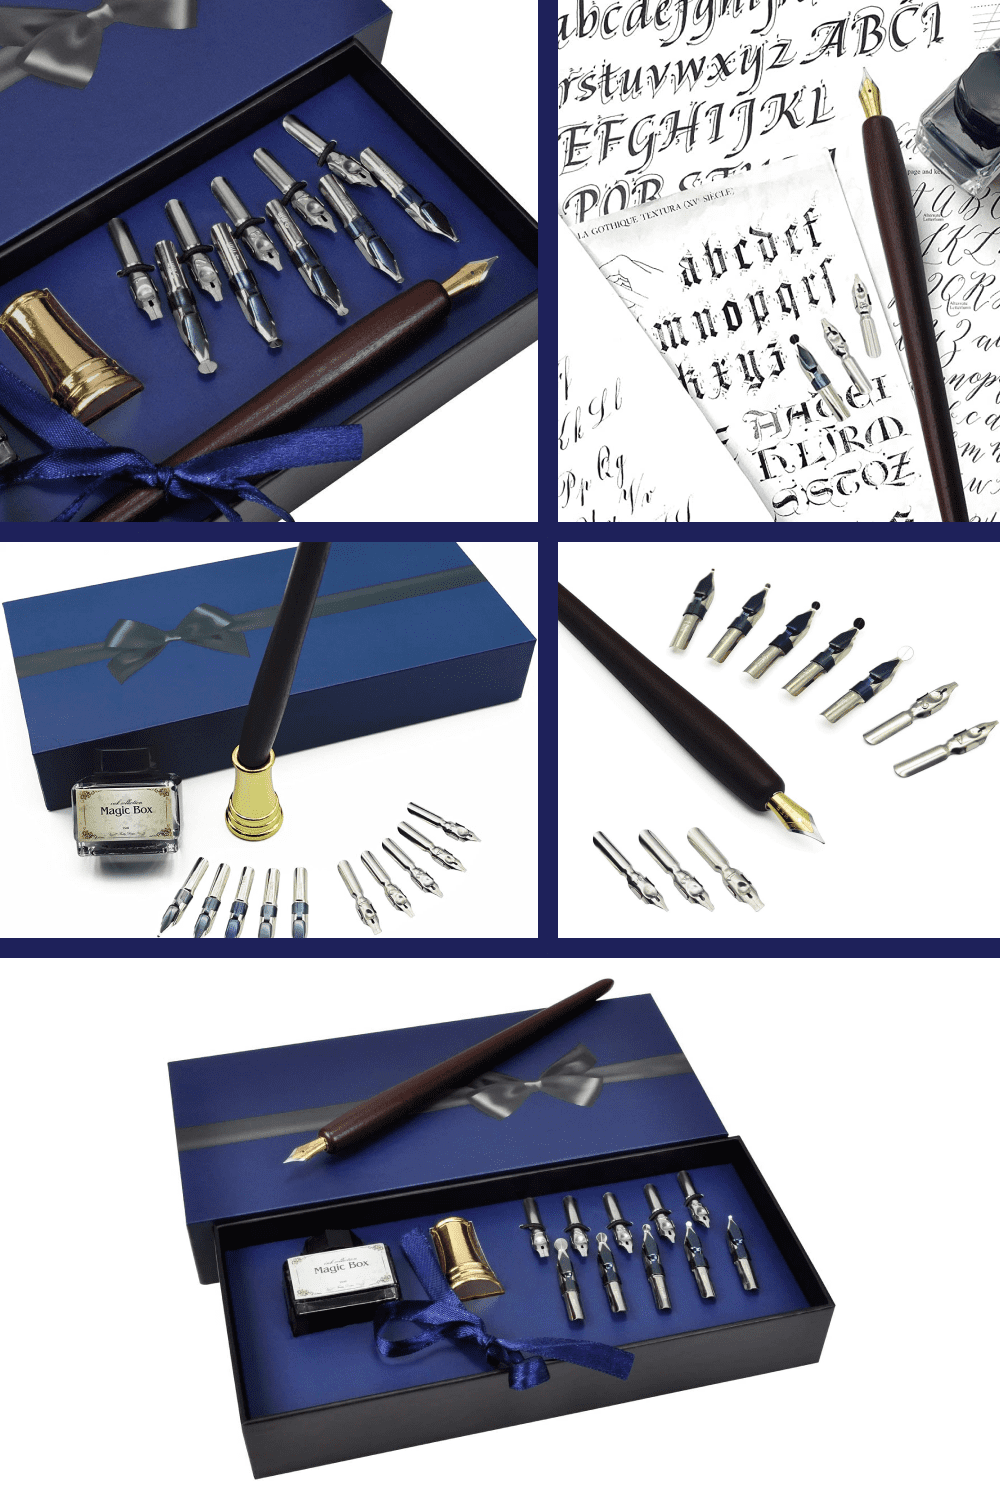 Dip pen nibs provide superior control and stability delivering smoothness and an easy ink flow.